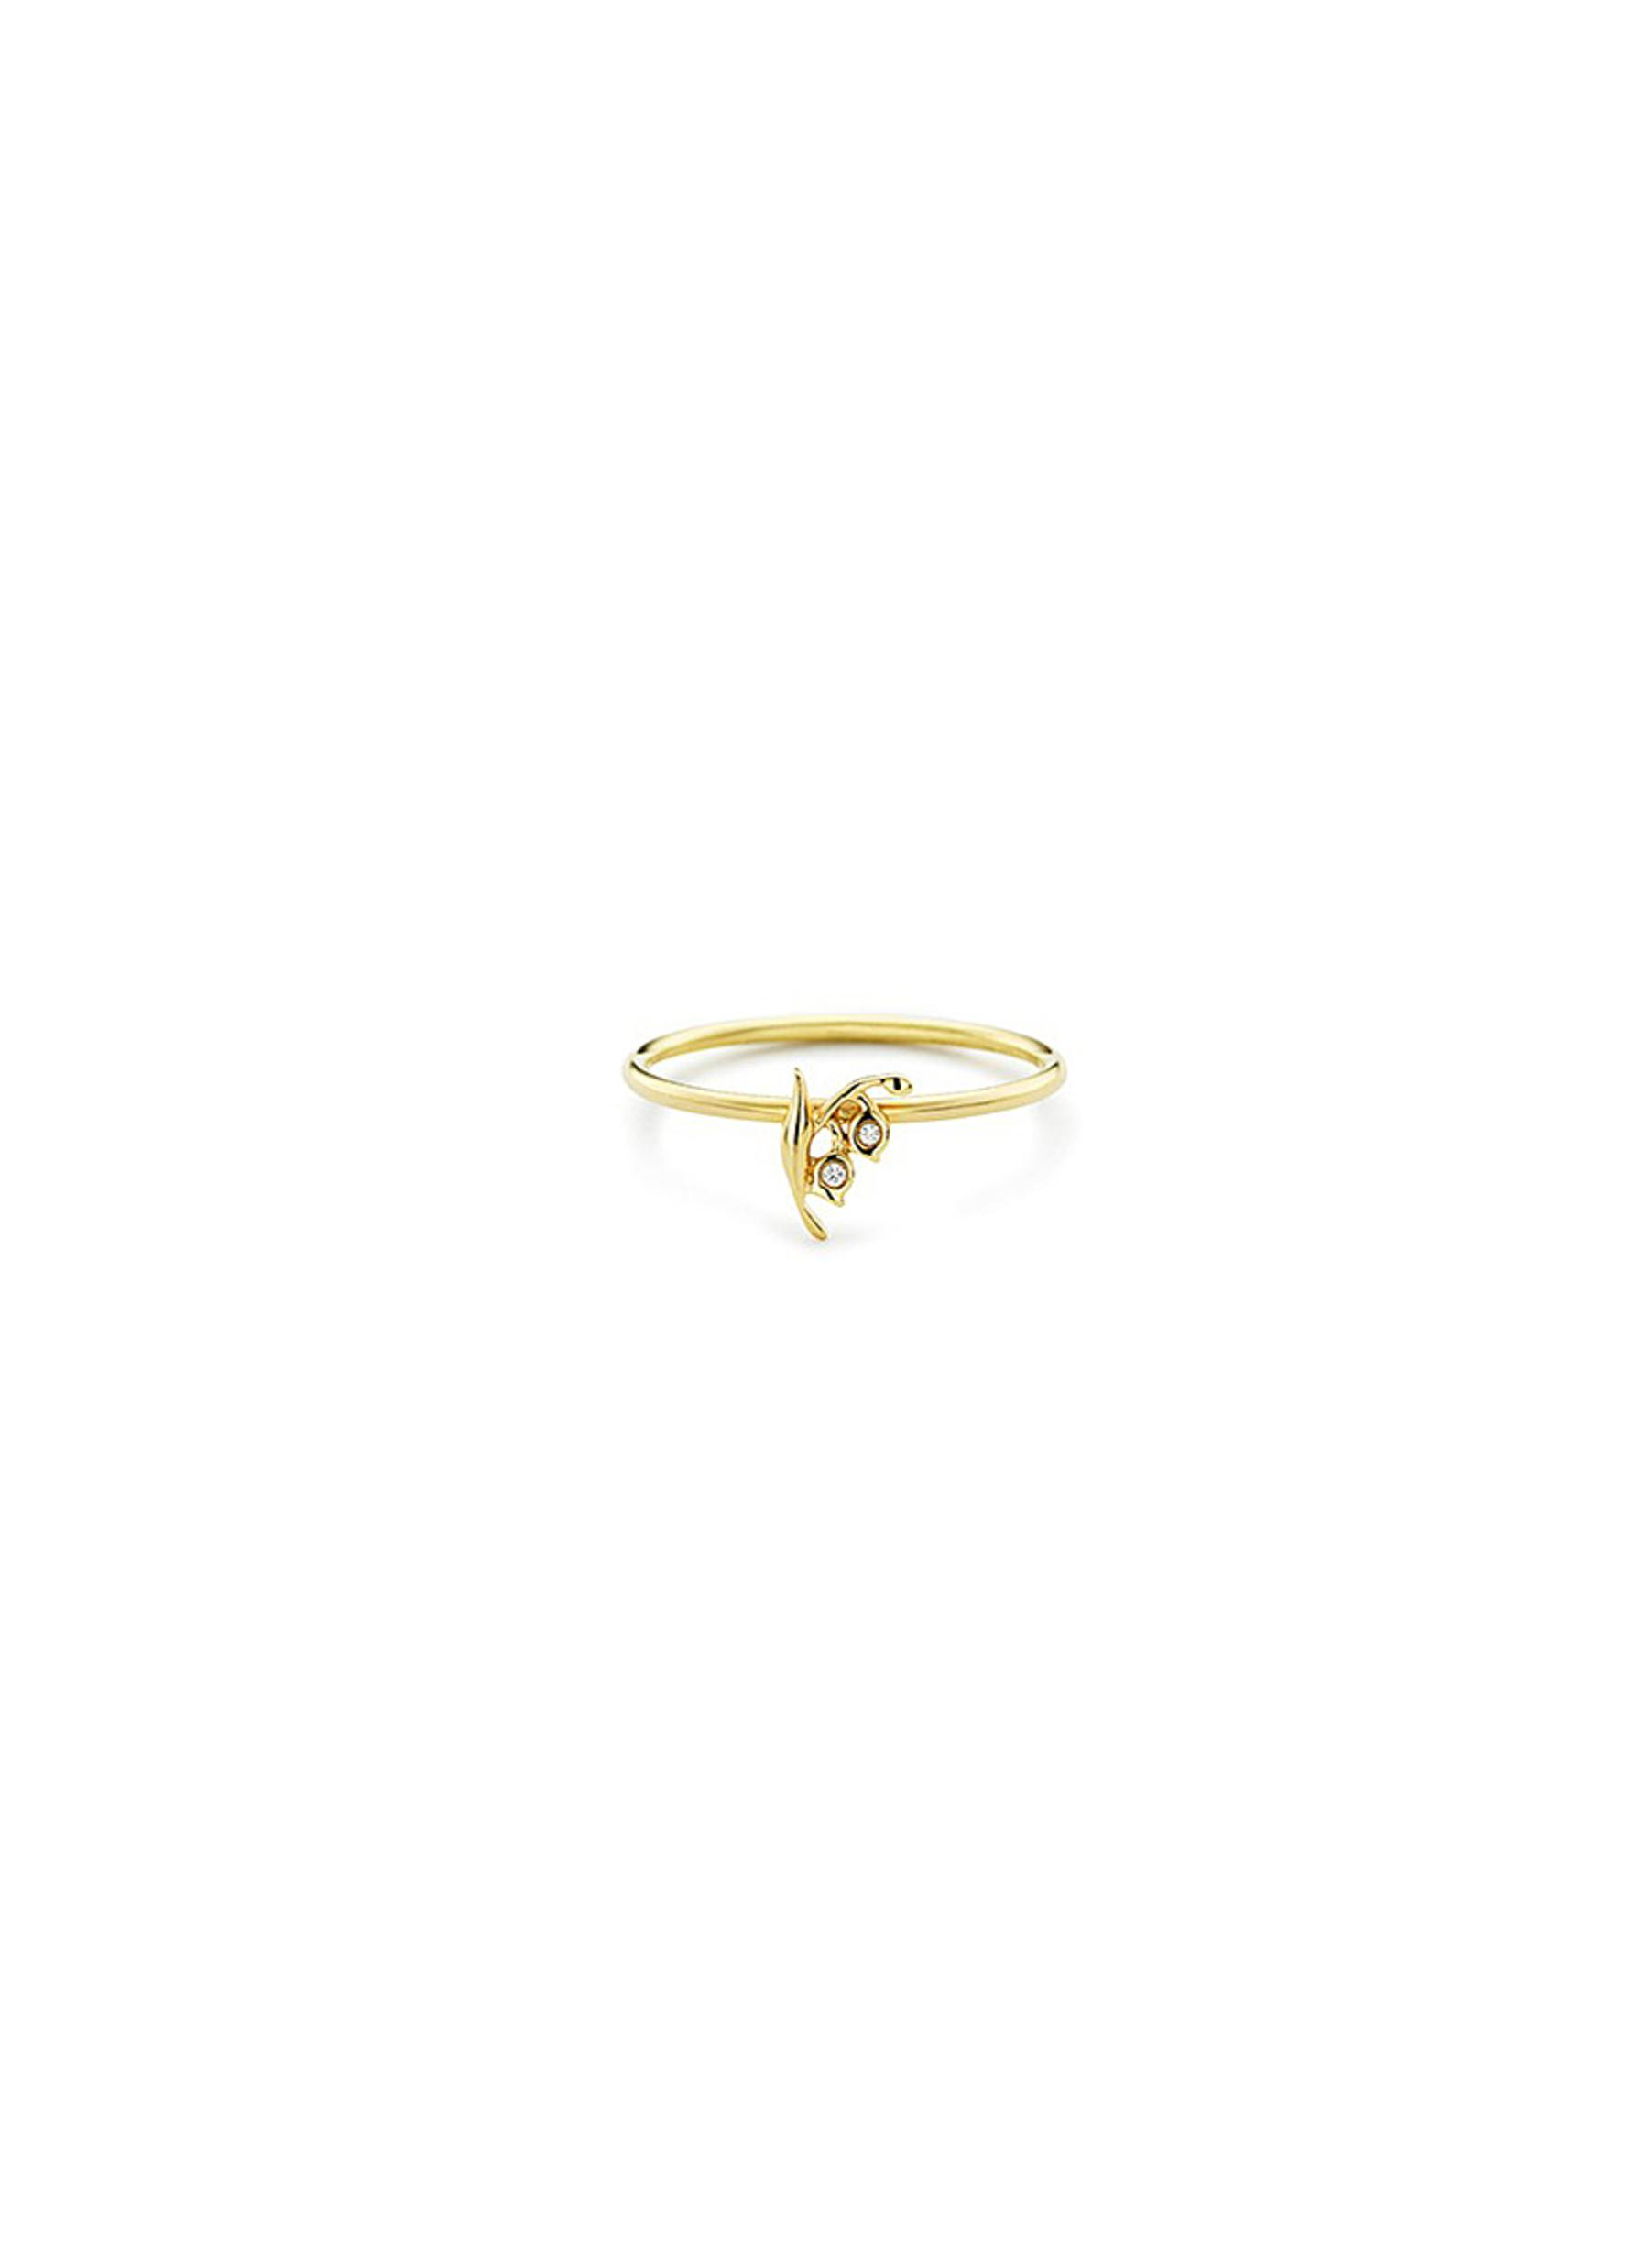 Diamond 18k yellow gold lily of the valley ring by Loquet London